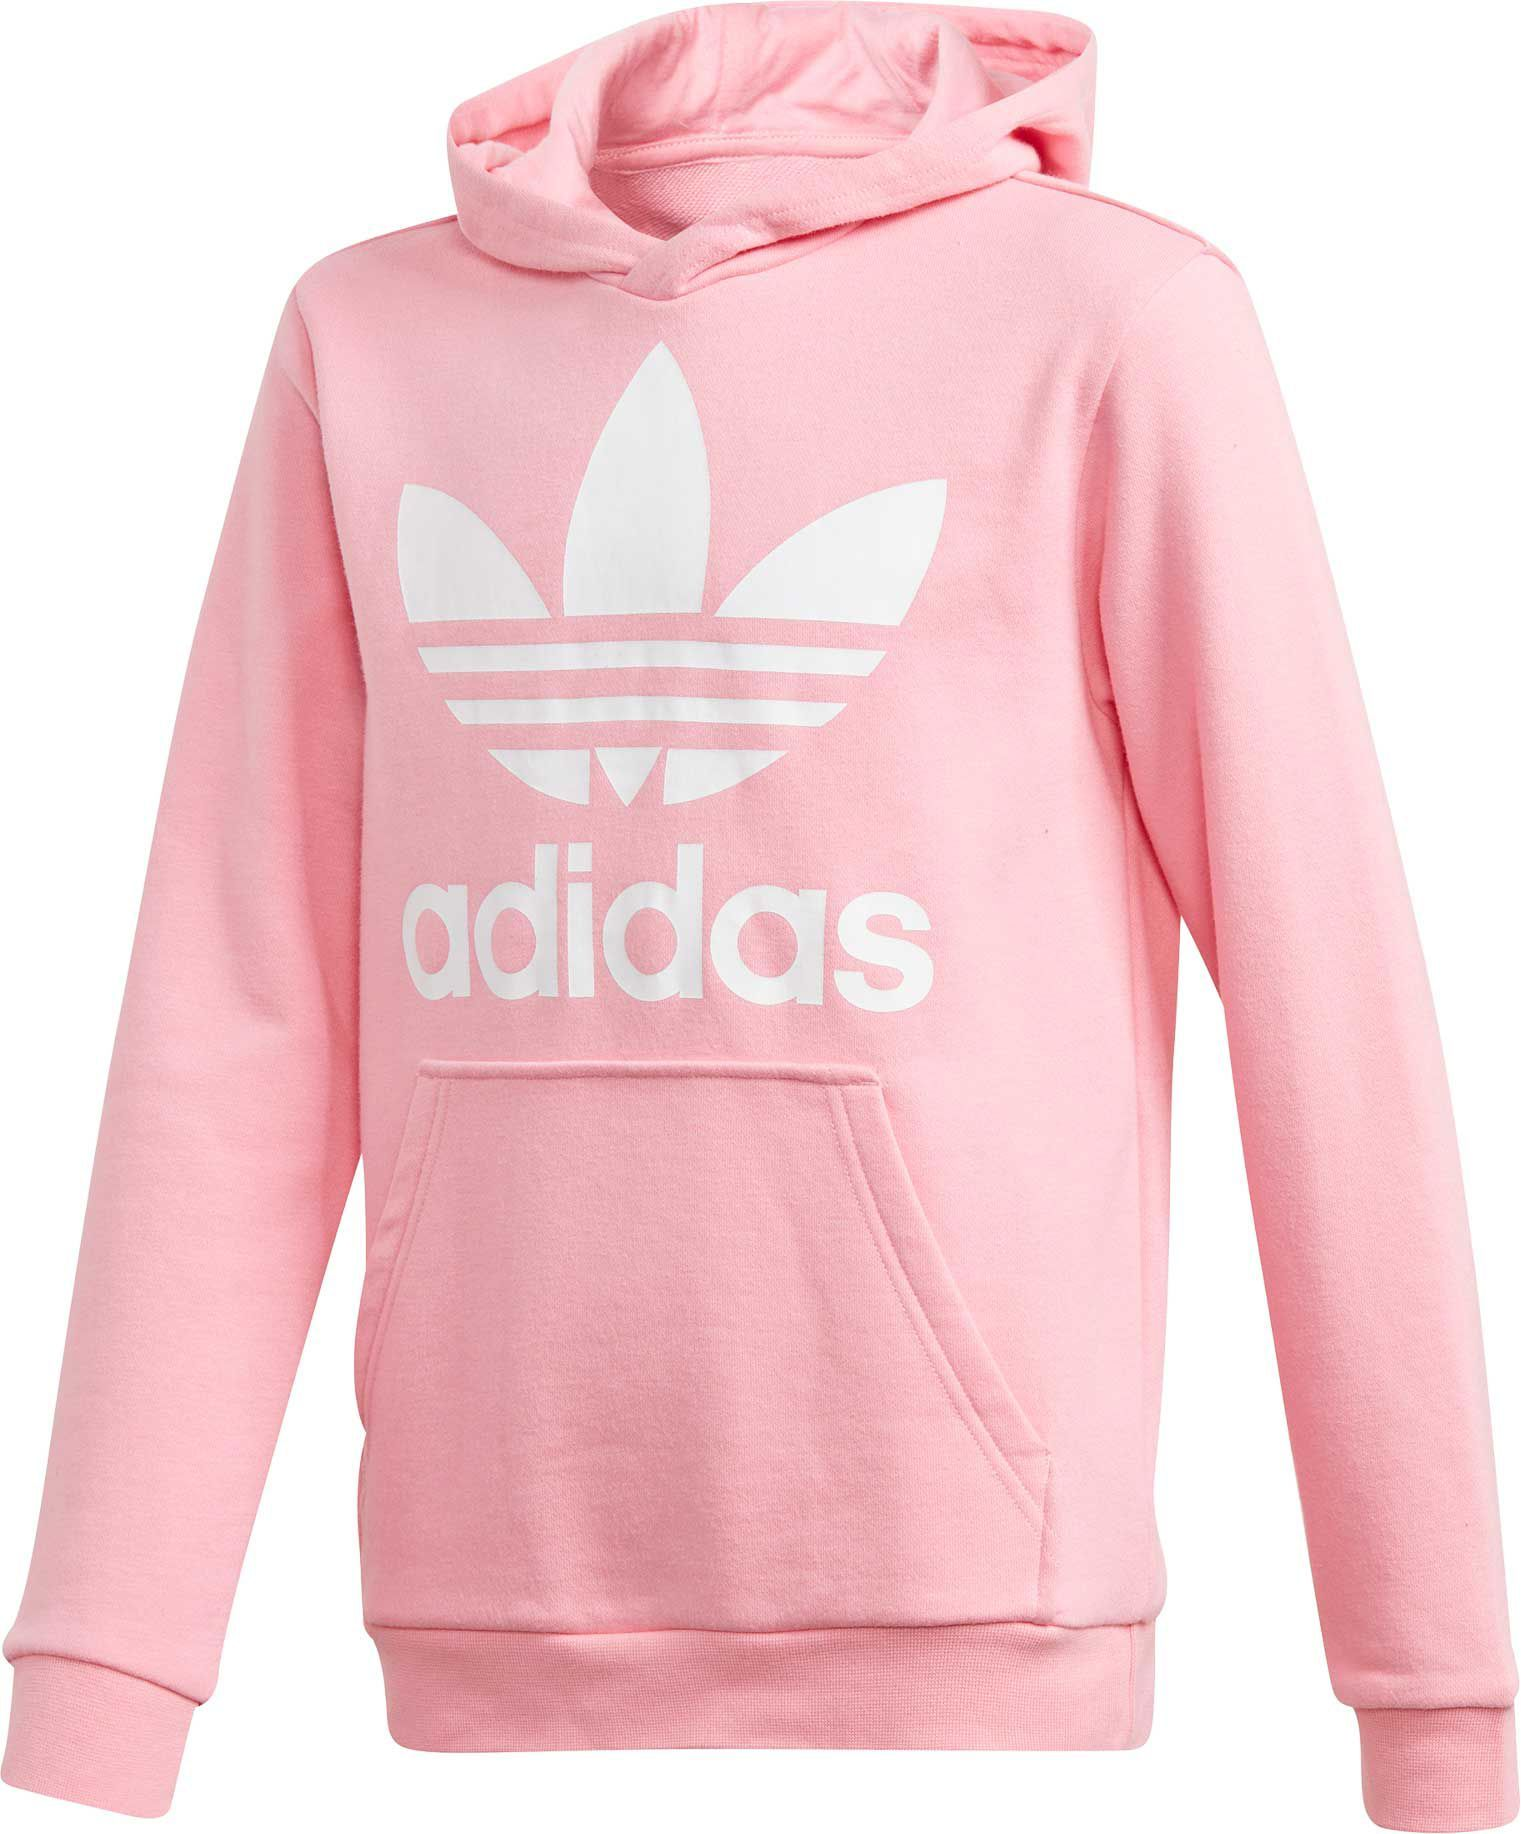 46dcb8cdc564 adidas Originals Girls  Trefoil Hoodie in 2019